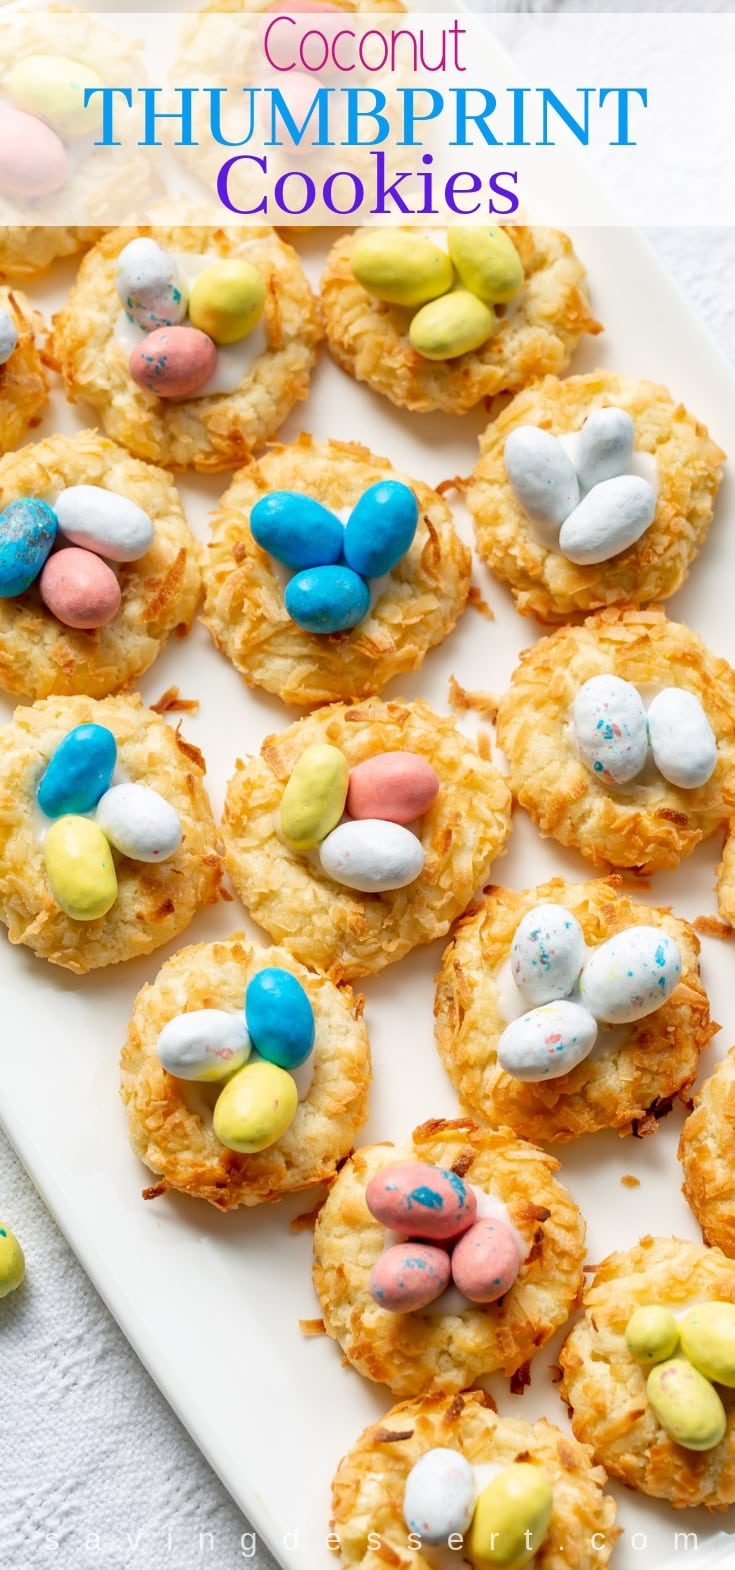 A plate of Coconut Thumbprint Cookies amongst speckled candy eggs inwards the middle Coconut Thumbprint Cookies Recipe